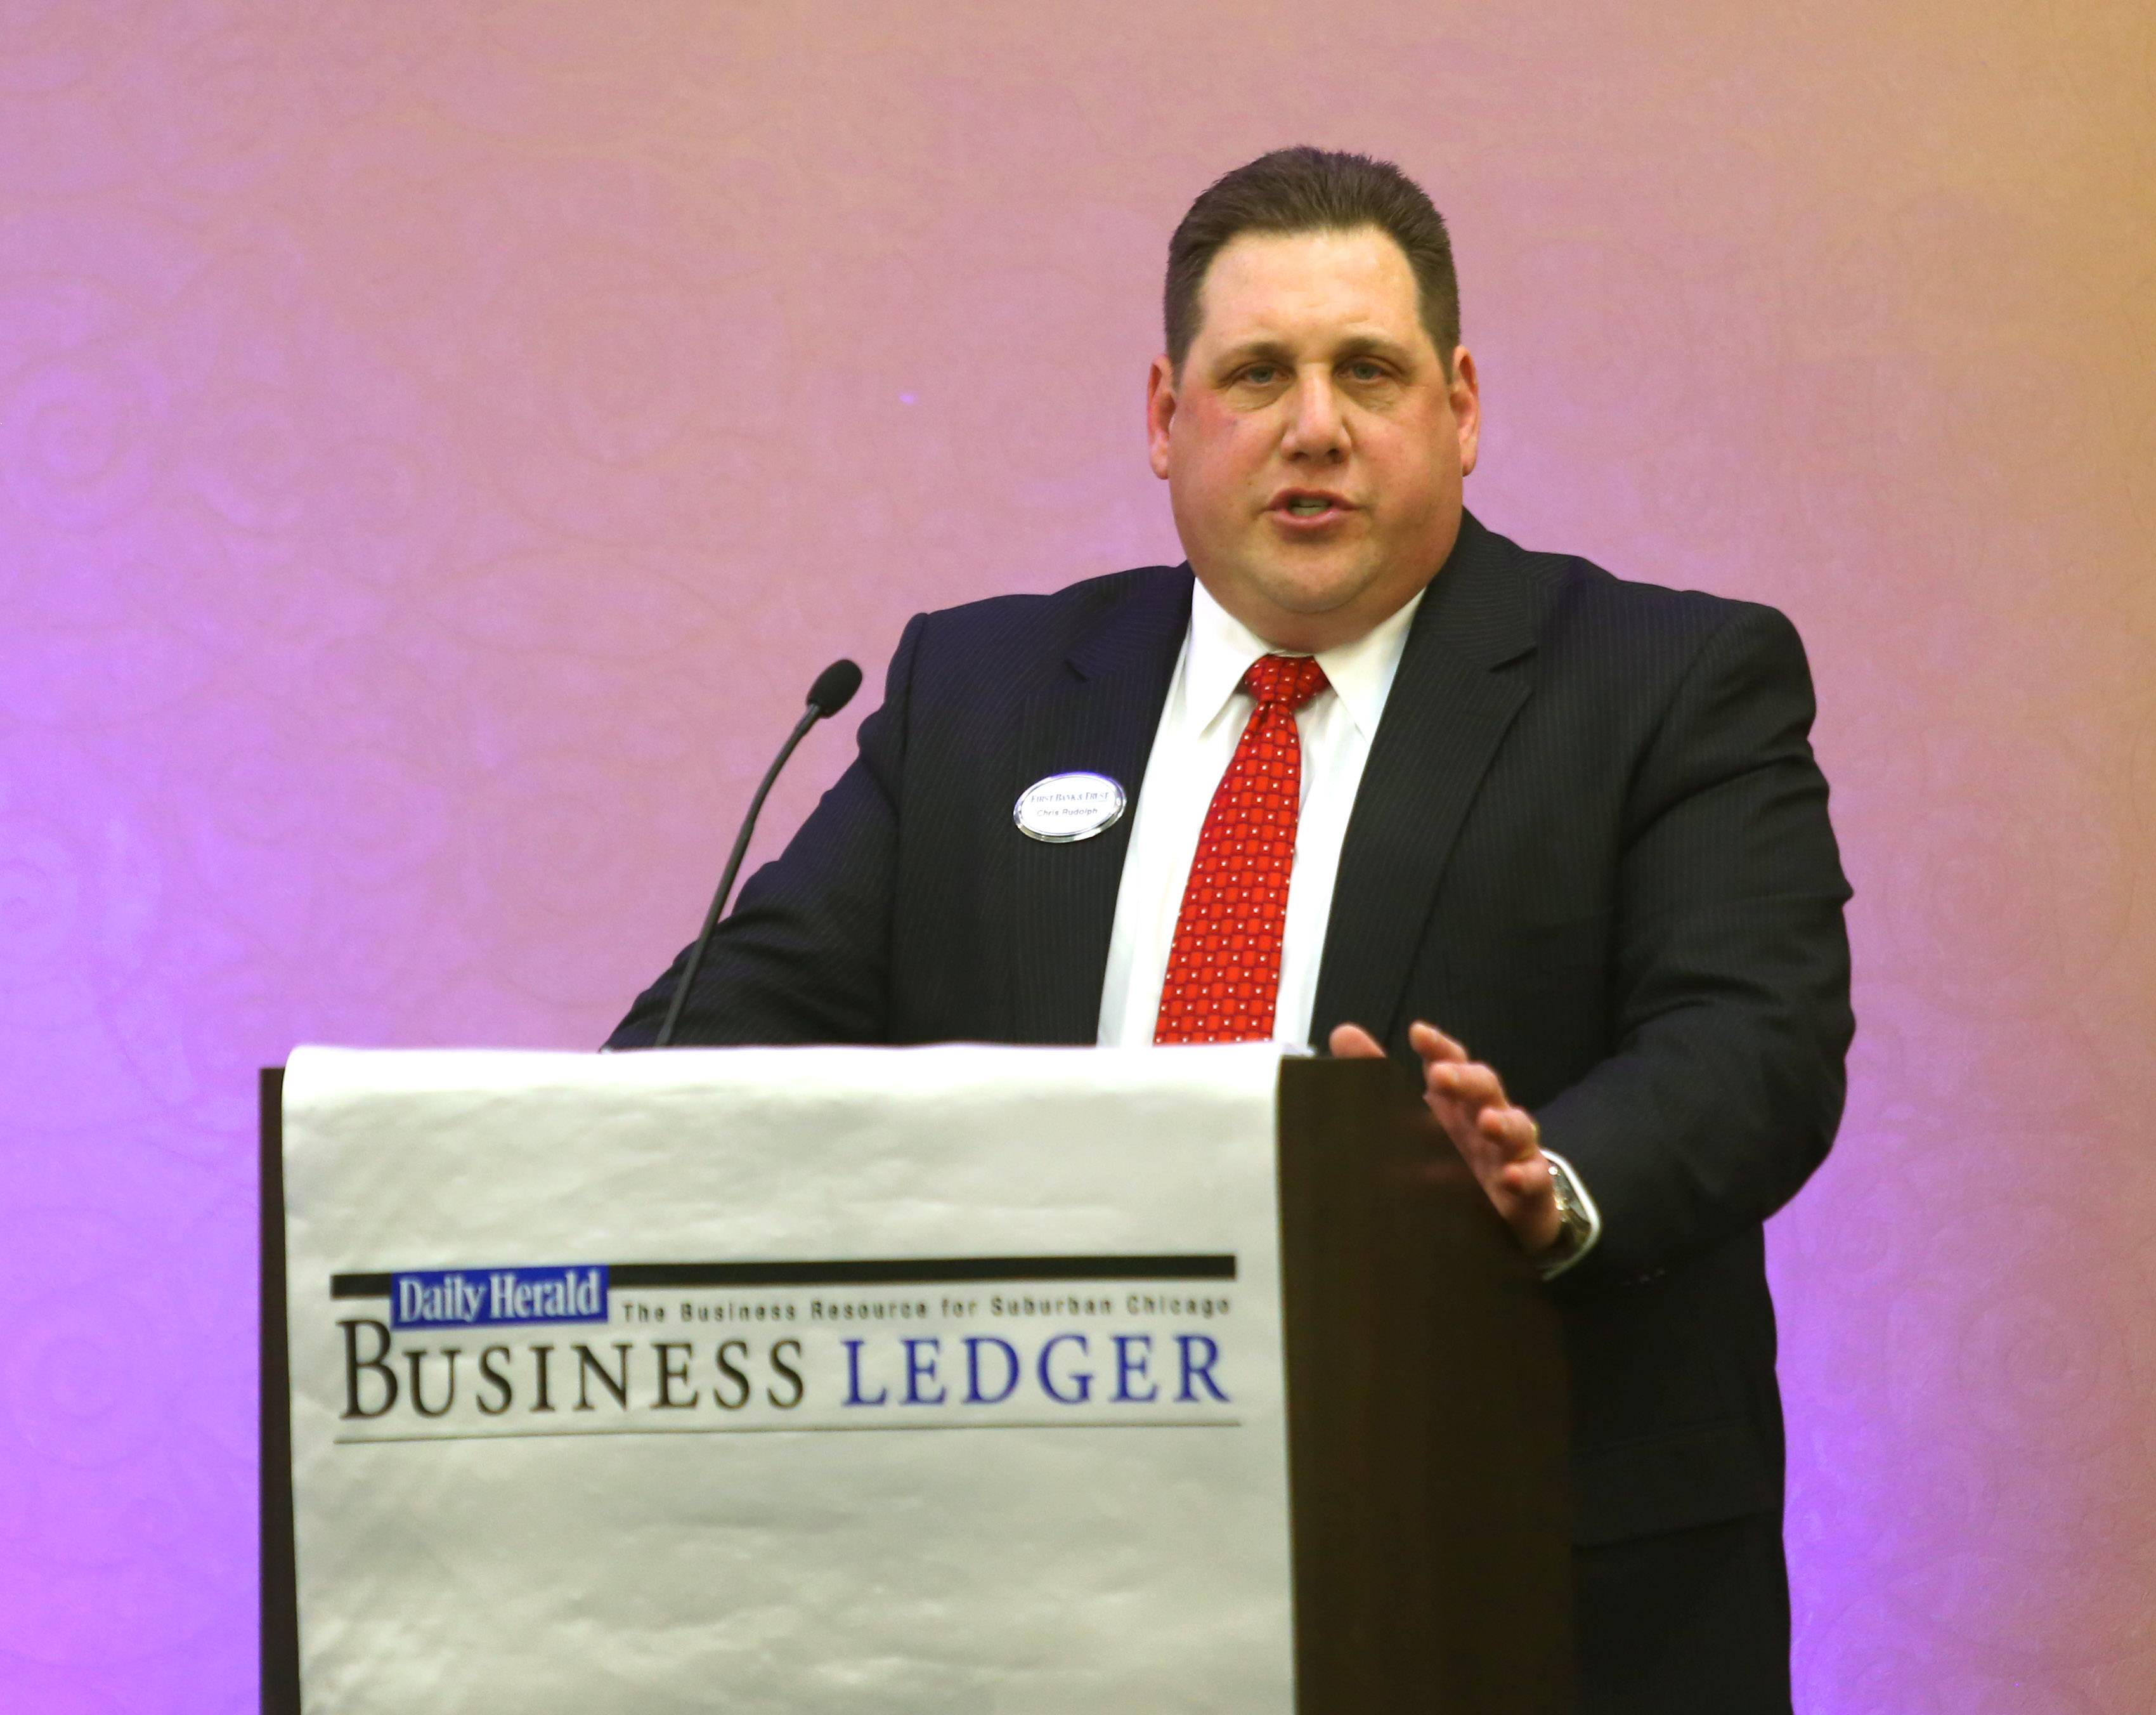 Chris Rudolph, managing director of commercial banking at First Bank & Trust, makes a point during the Daily Herald Business Ledger Newsmakers' Forum on banking and finance Thursday in Downers Grove.